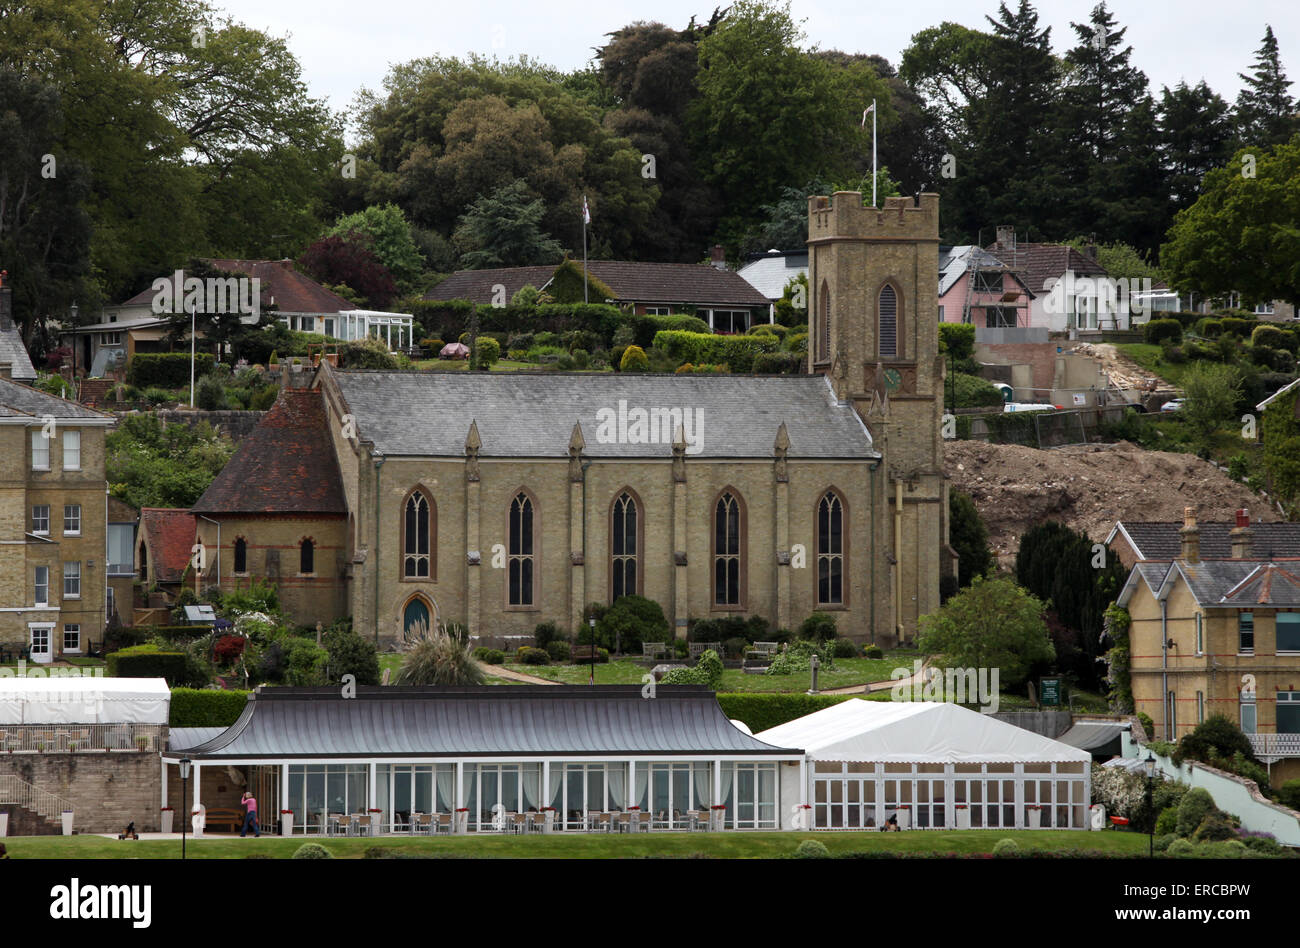 Holy Trinty Church in Cowes on the Isle of Wight - Stock Image